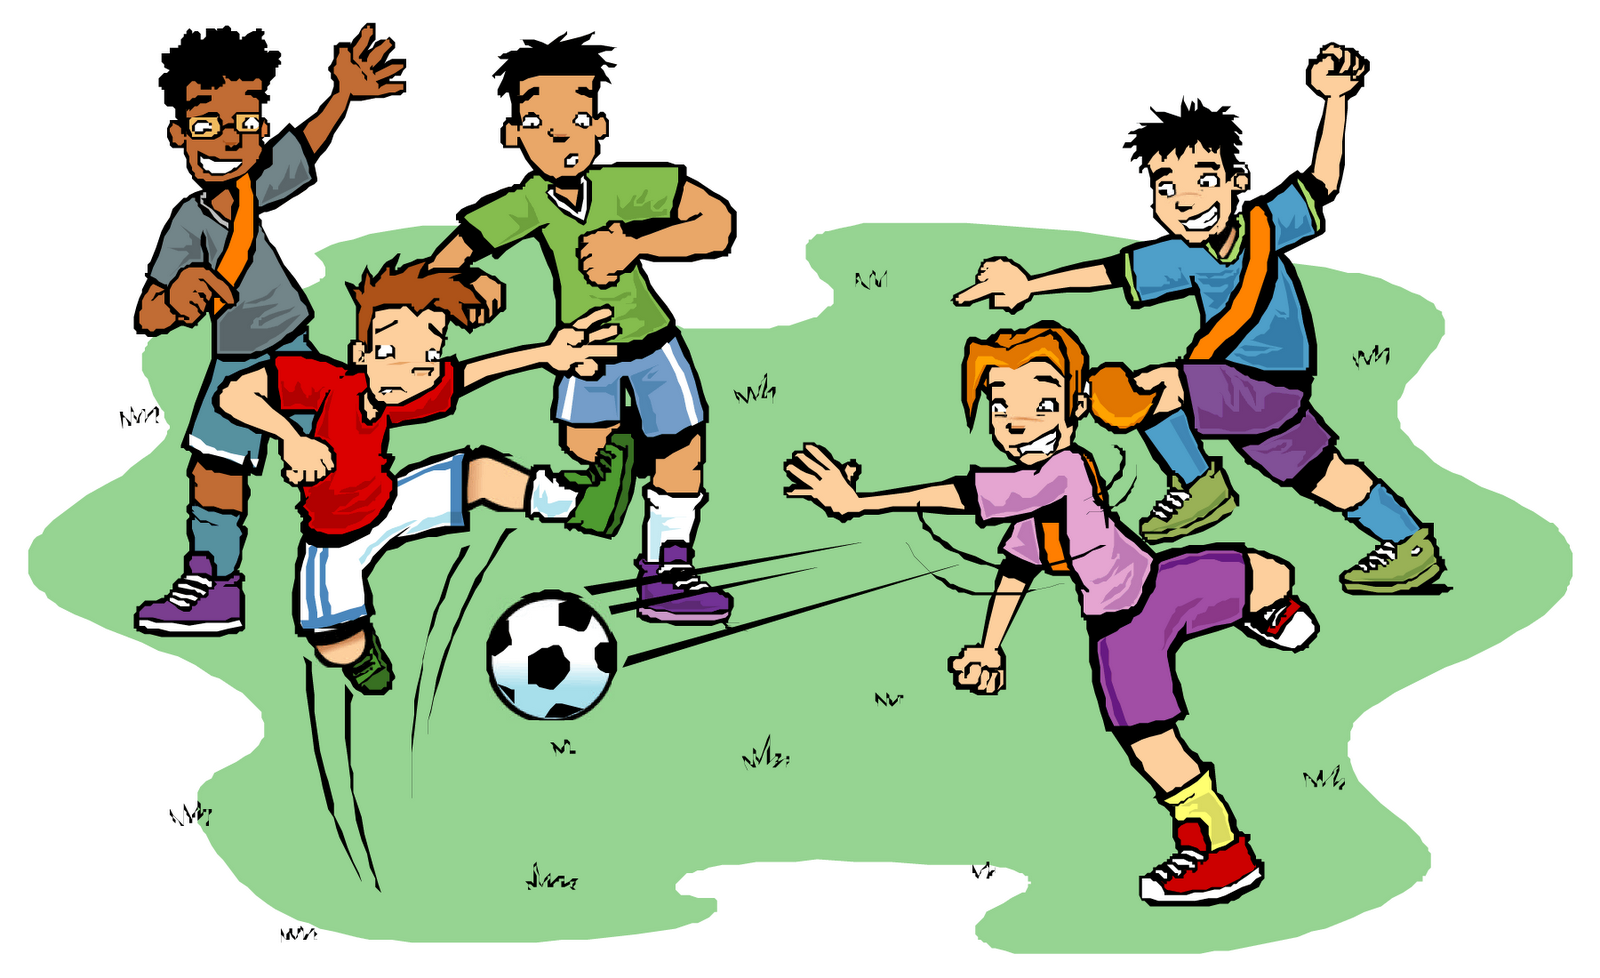 Family football clipart image library stock Free Family Football Cliparts, Download Free Clip Art, Free Clip Art ... image library stock